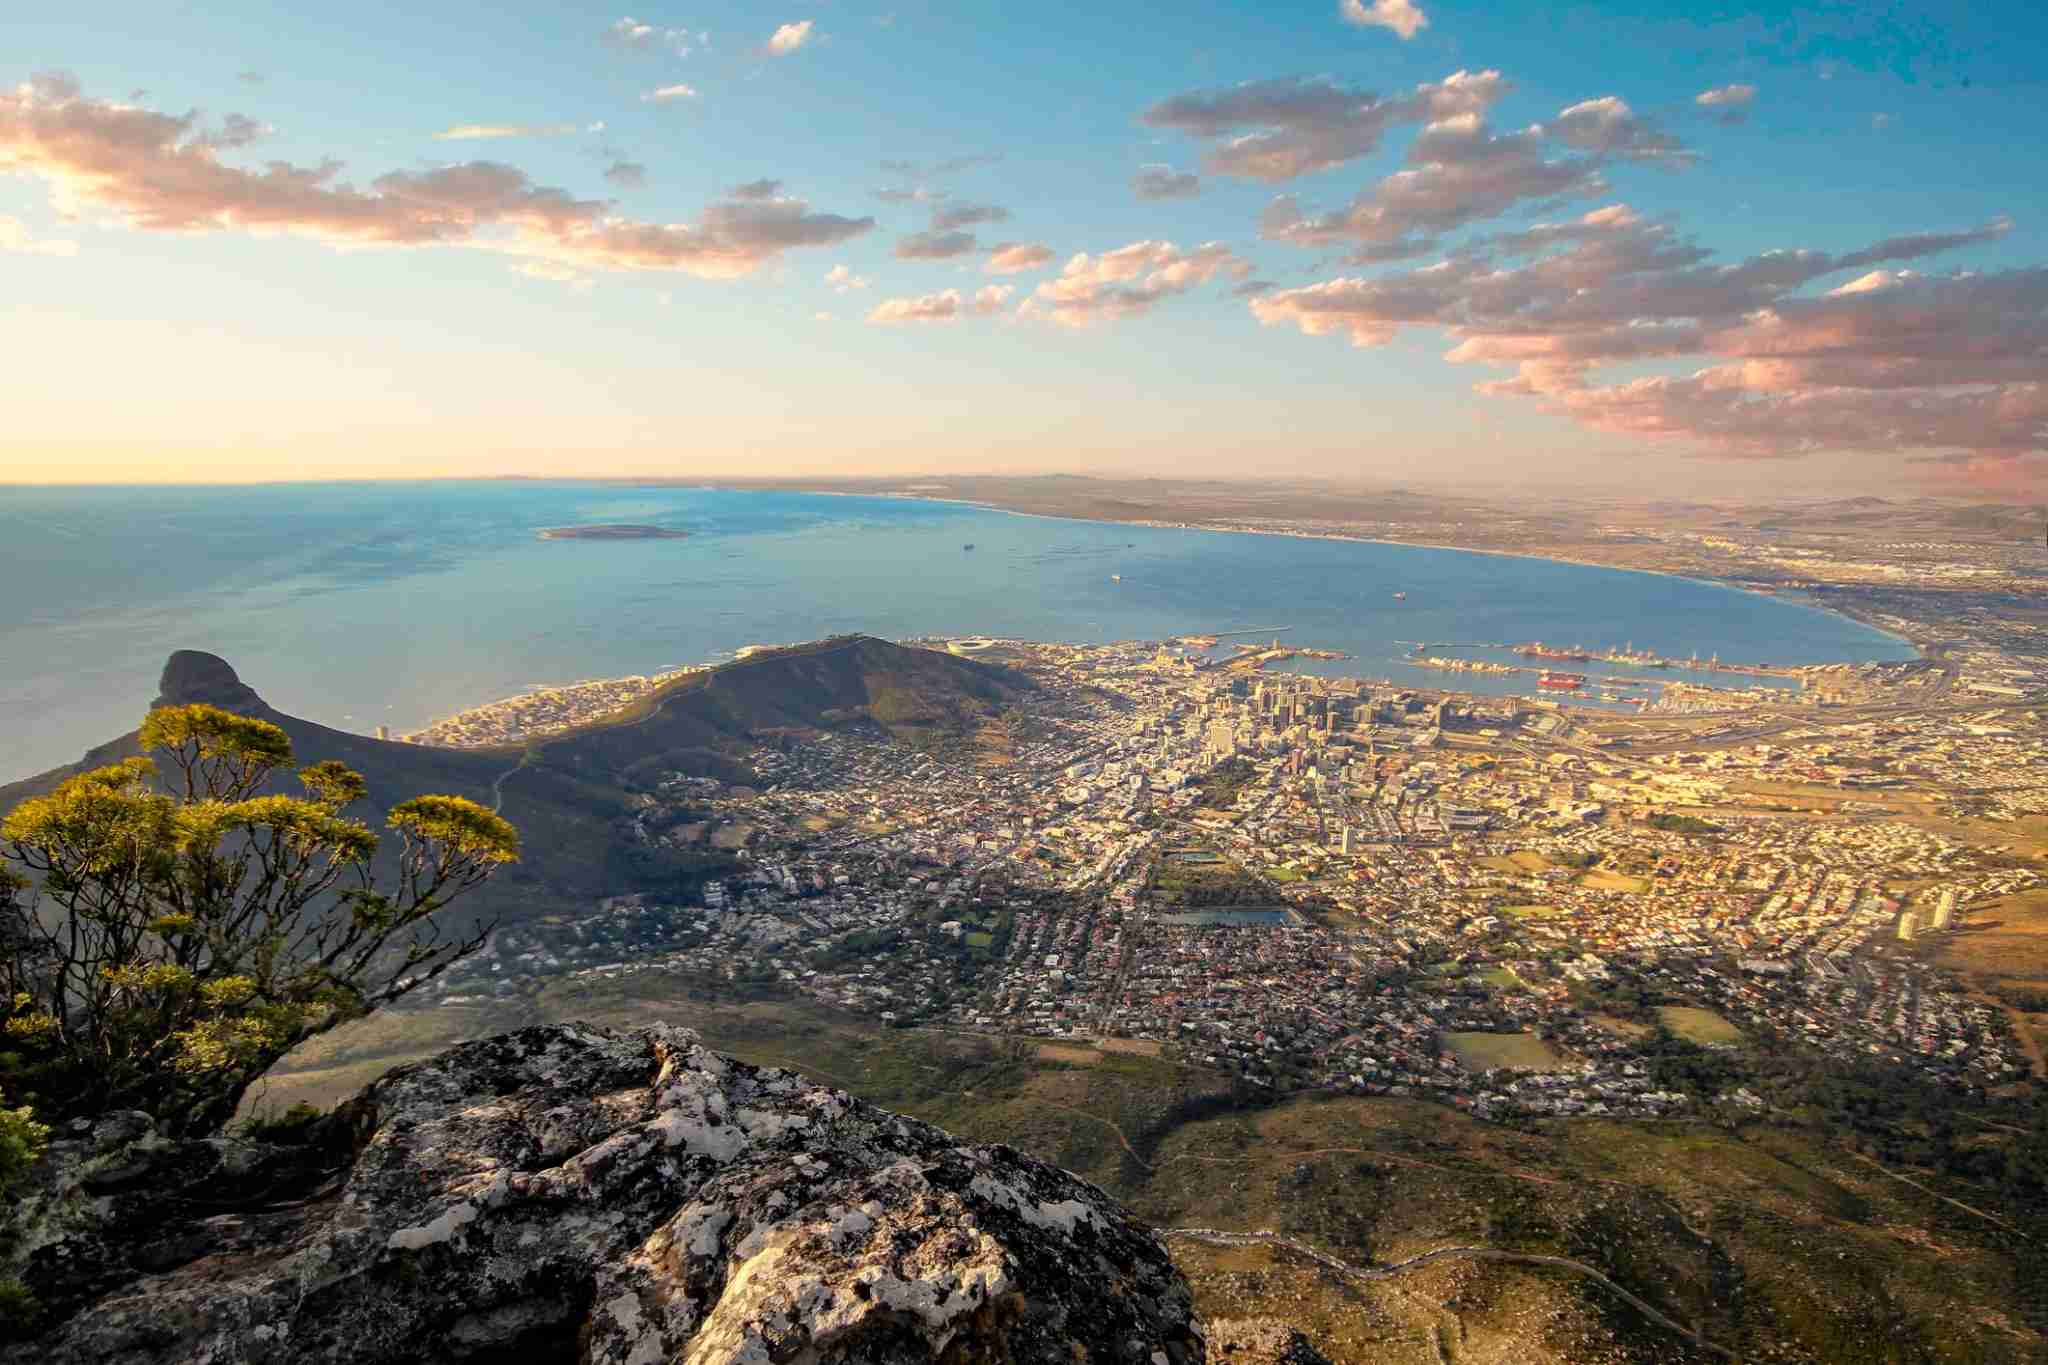 Beautiful sunset and landscape of Cape Town from Table Mountain lookout, this is the​ best sight in the city of Cape Town in South Africa, you can see everything in a clear day.This is a dramatic landscape of the area, we see some clouds and colorful sky, the sunlight is about to set and is casting some wonderful colors the city looks amazing.